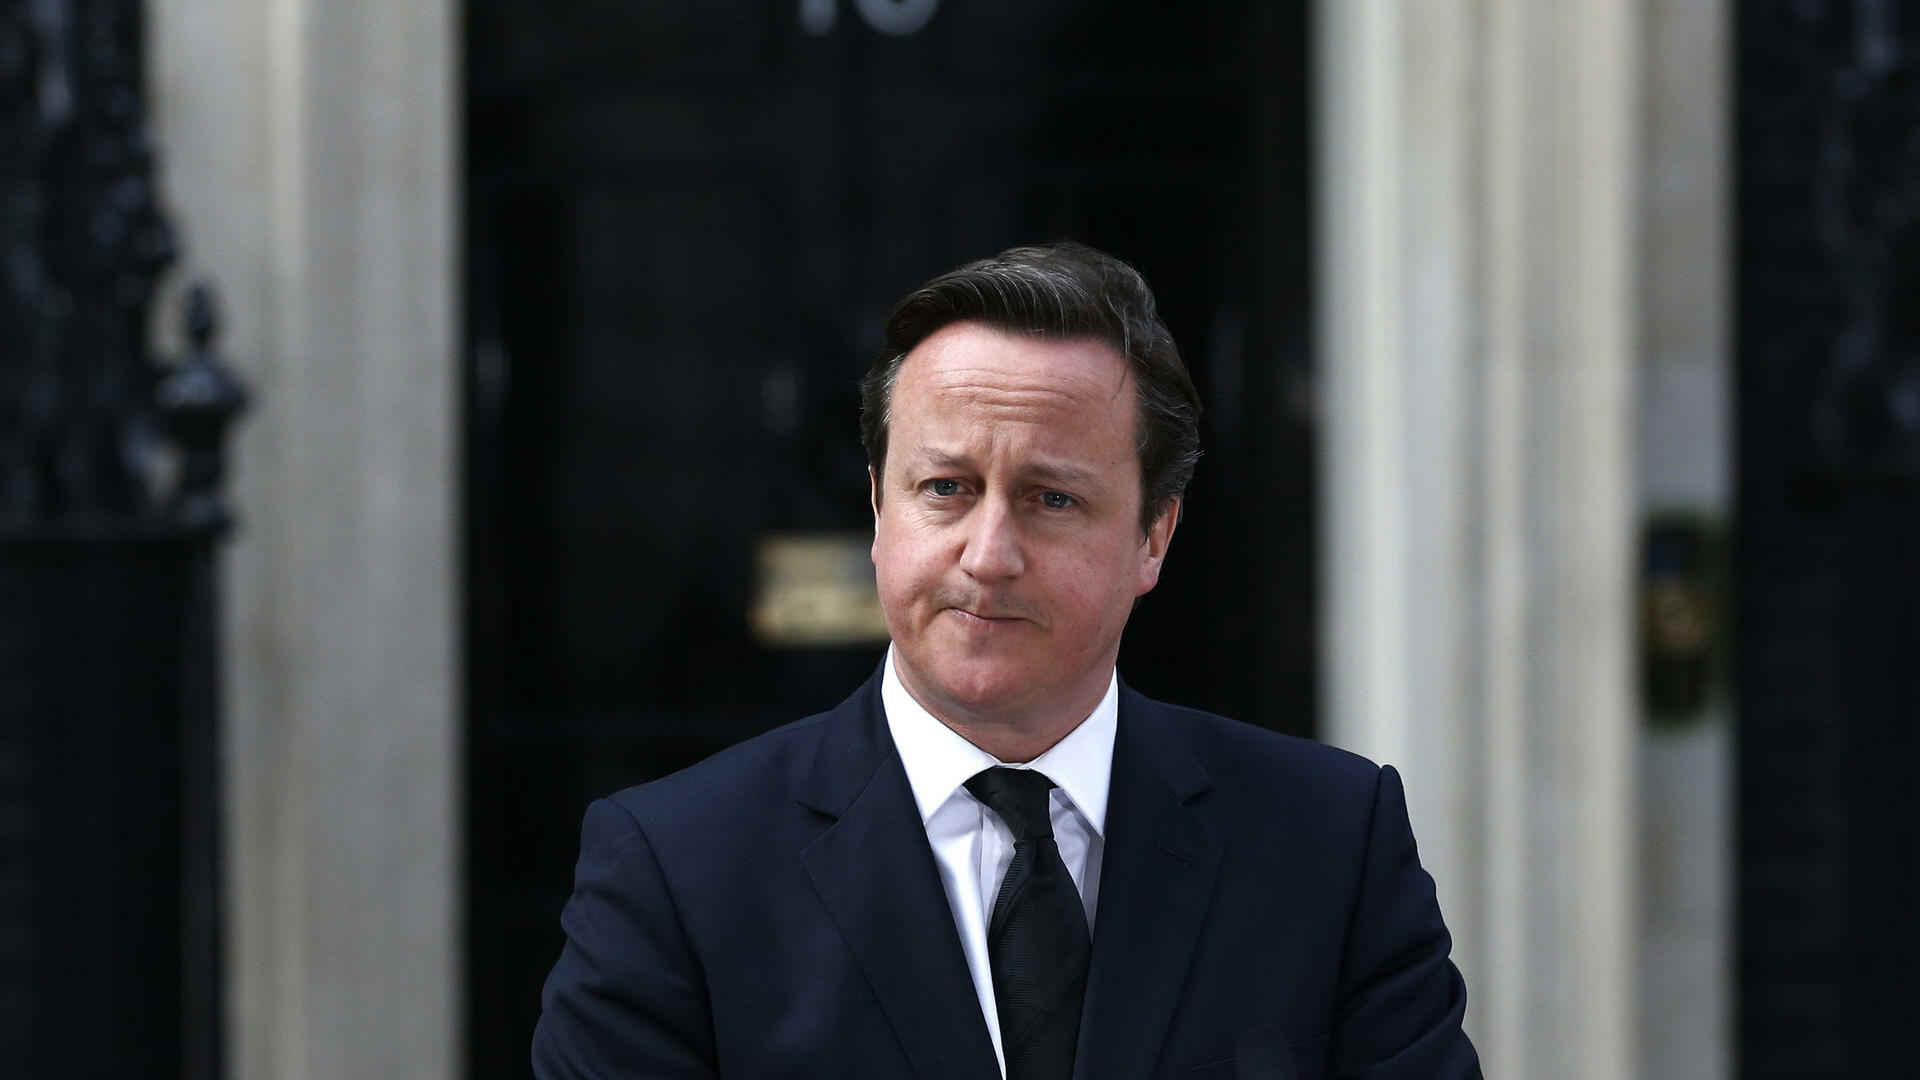 David Cameron Quelle: AP